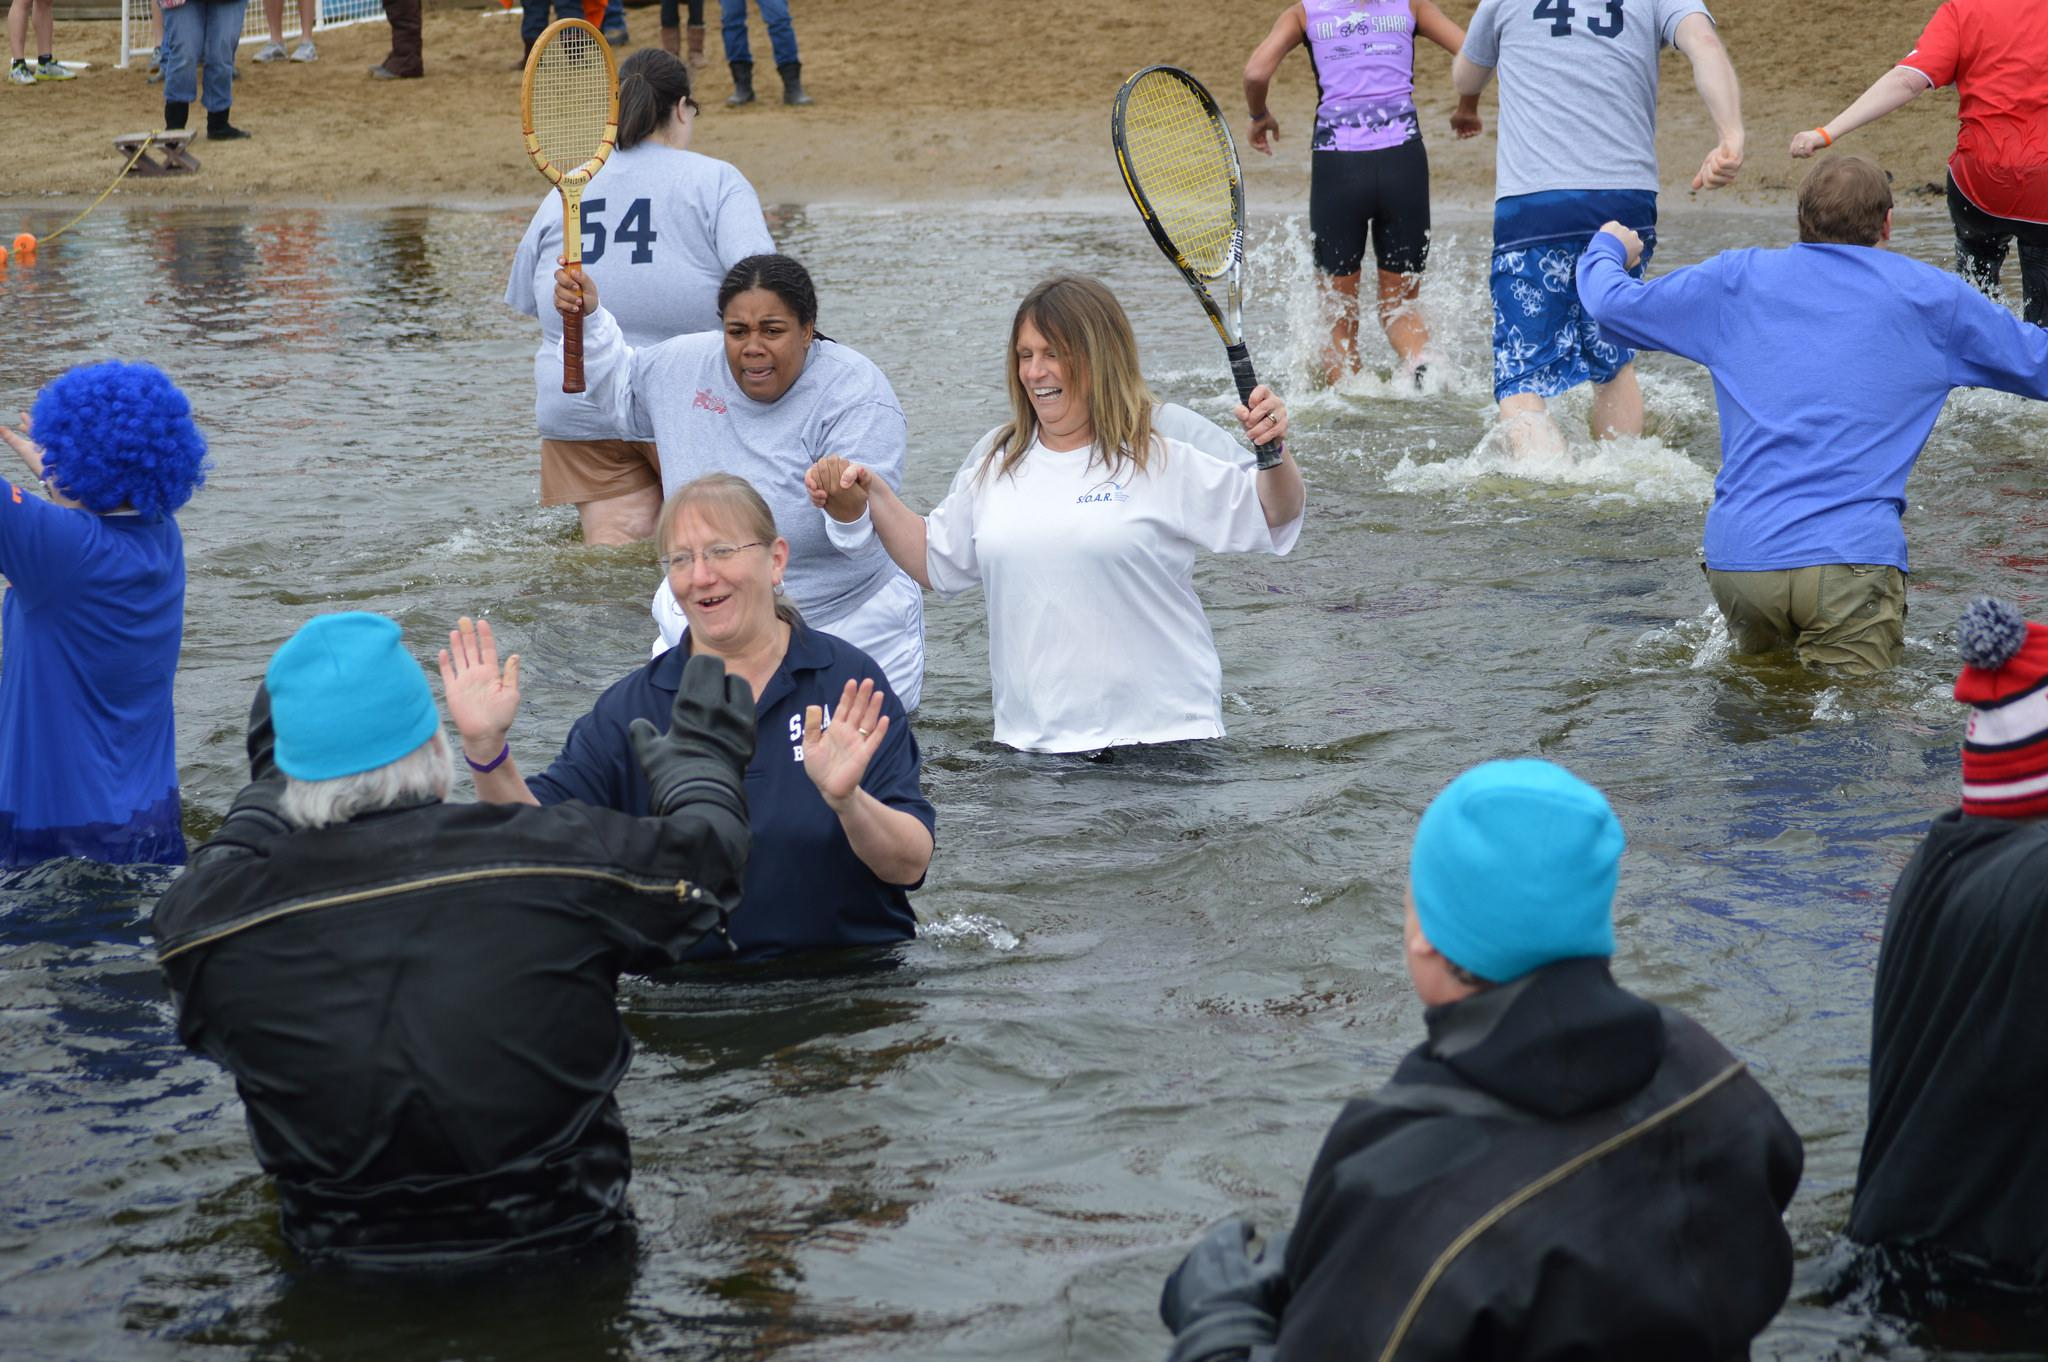 Annual Polar Plunge raising funds for Special Olympics